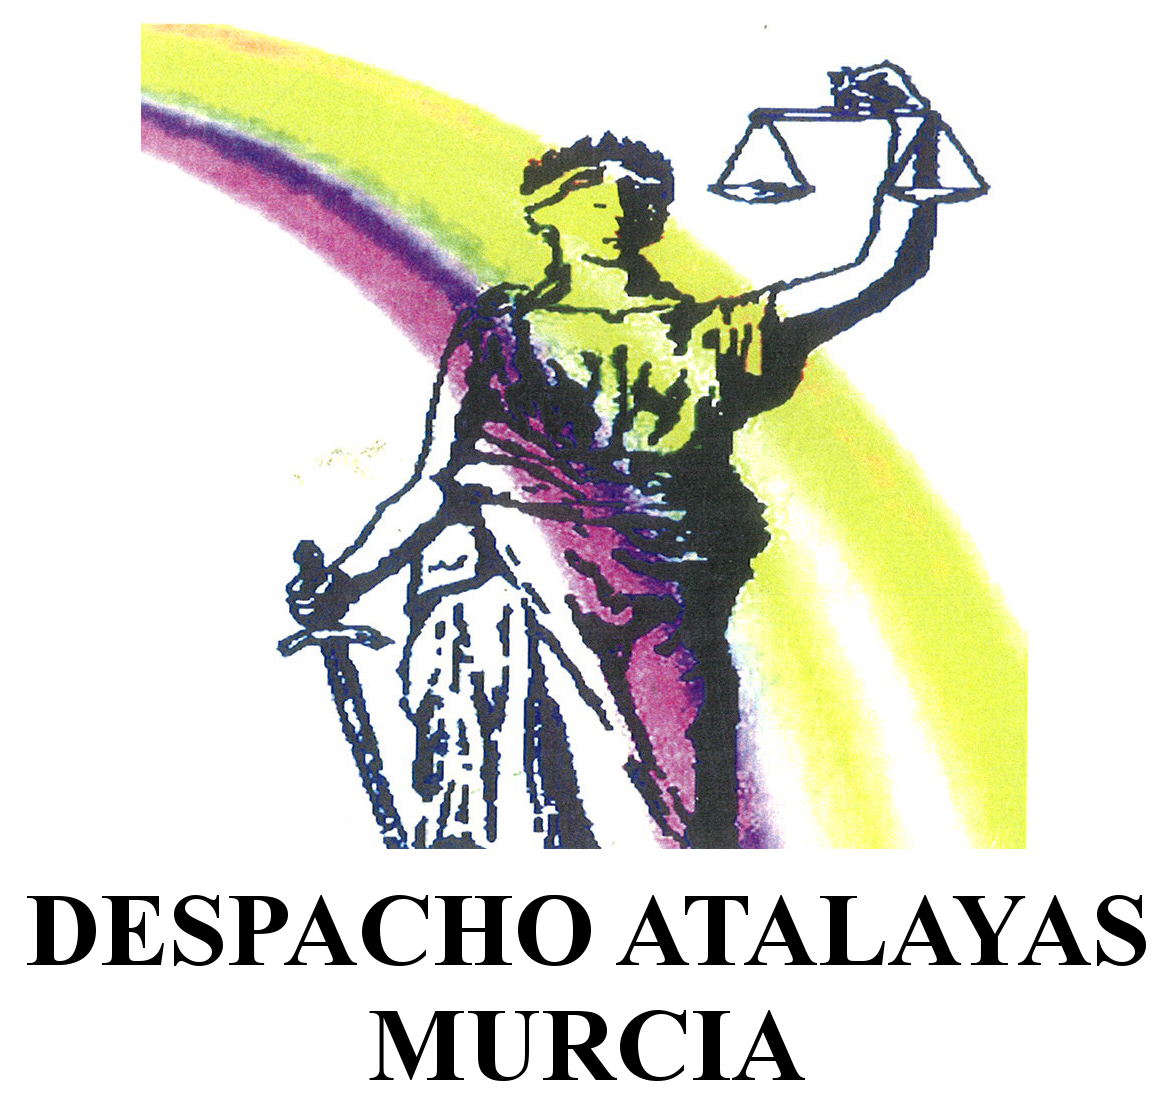 Despacho Atalayas